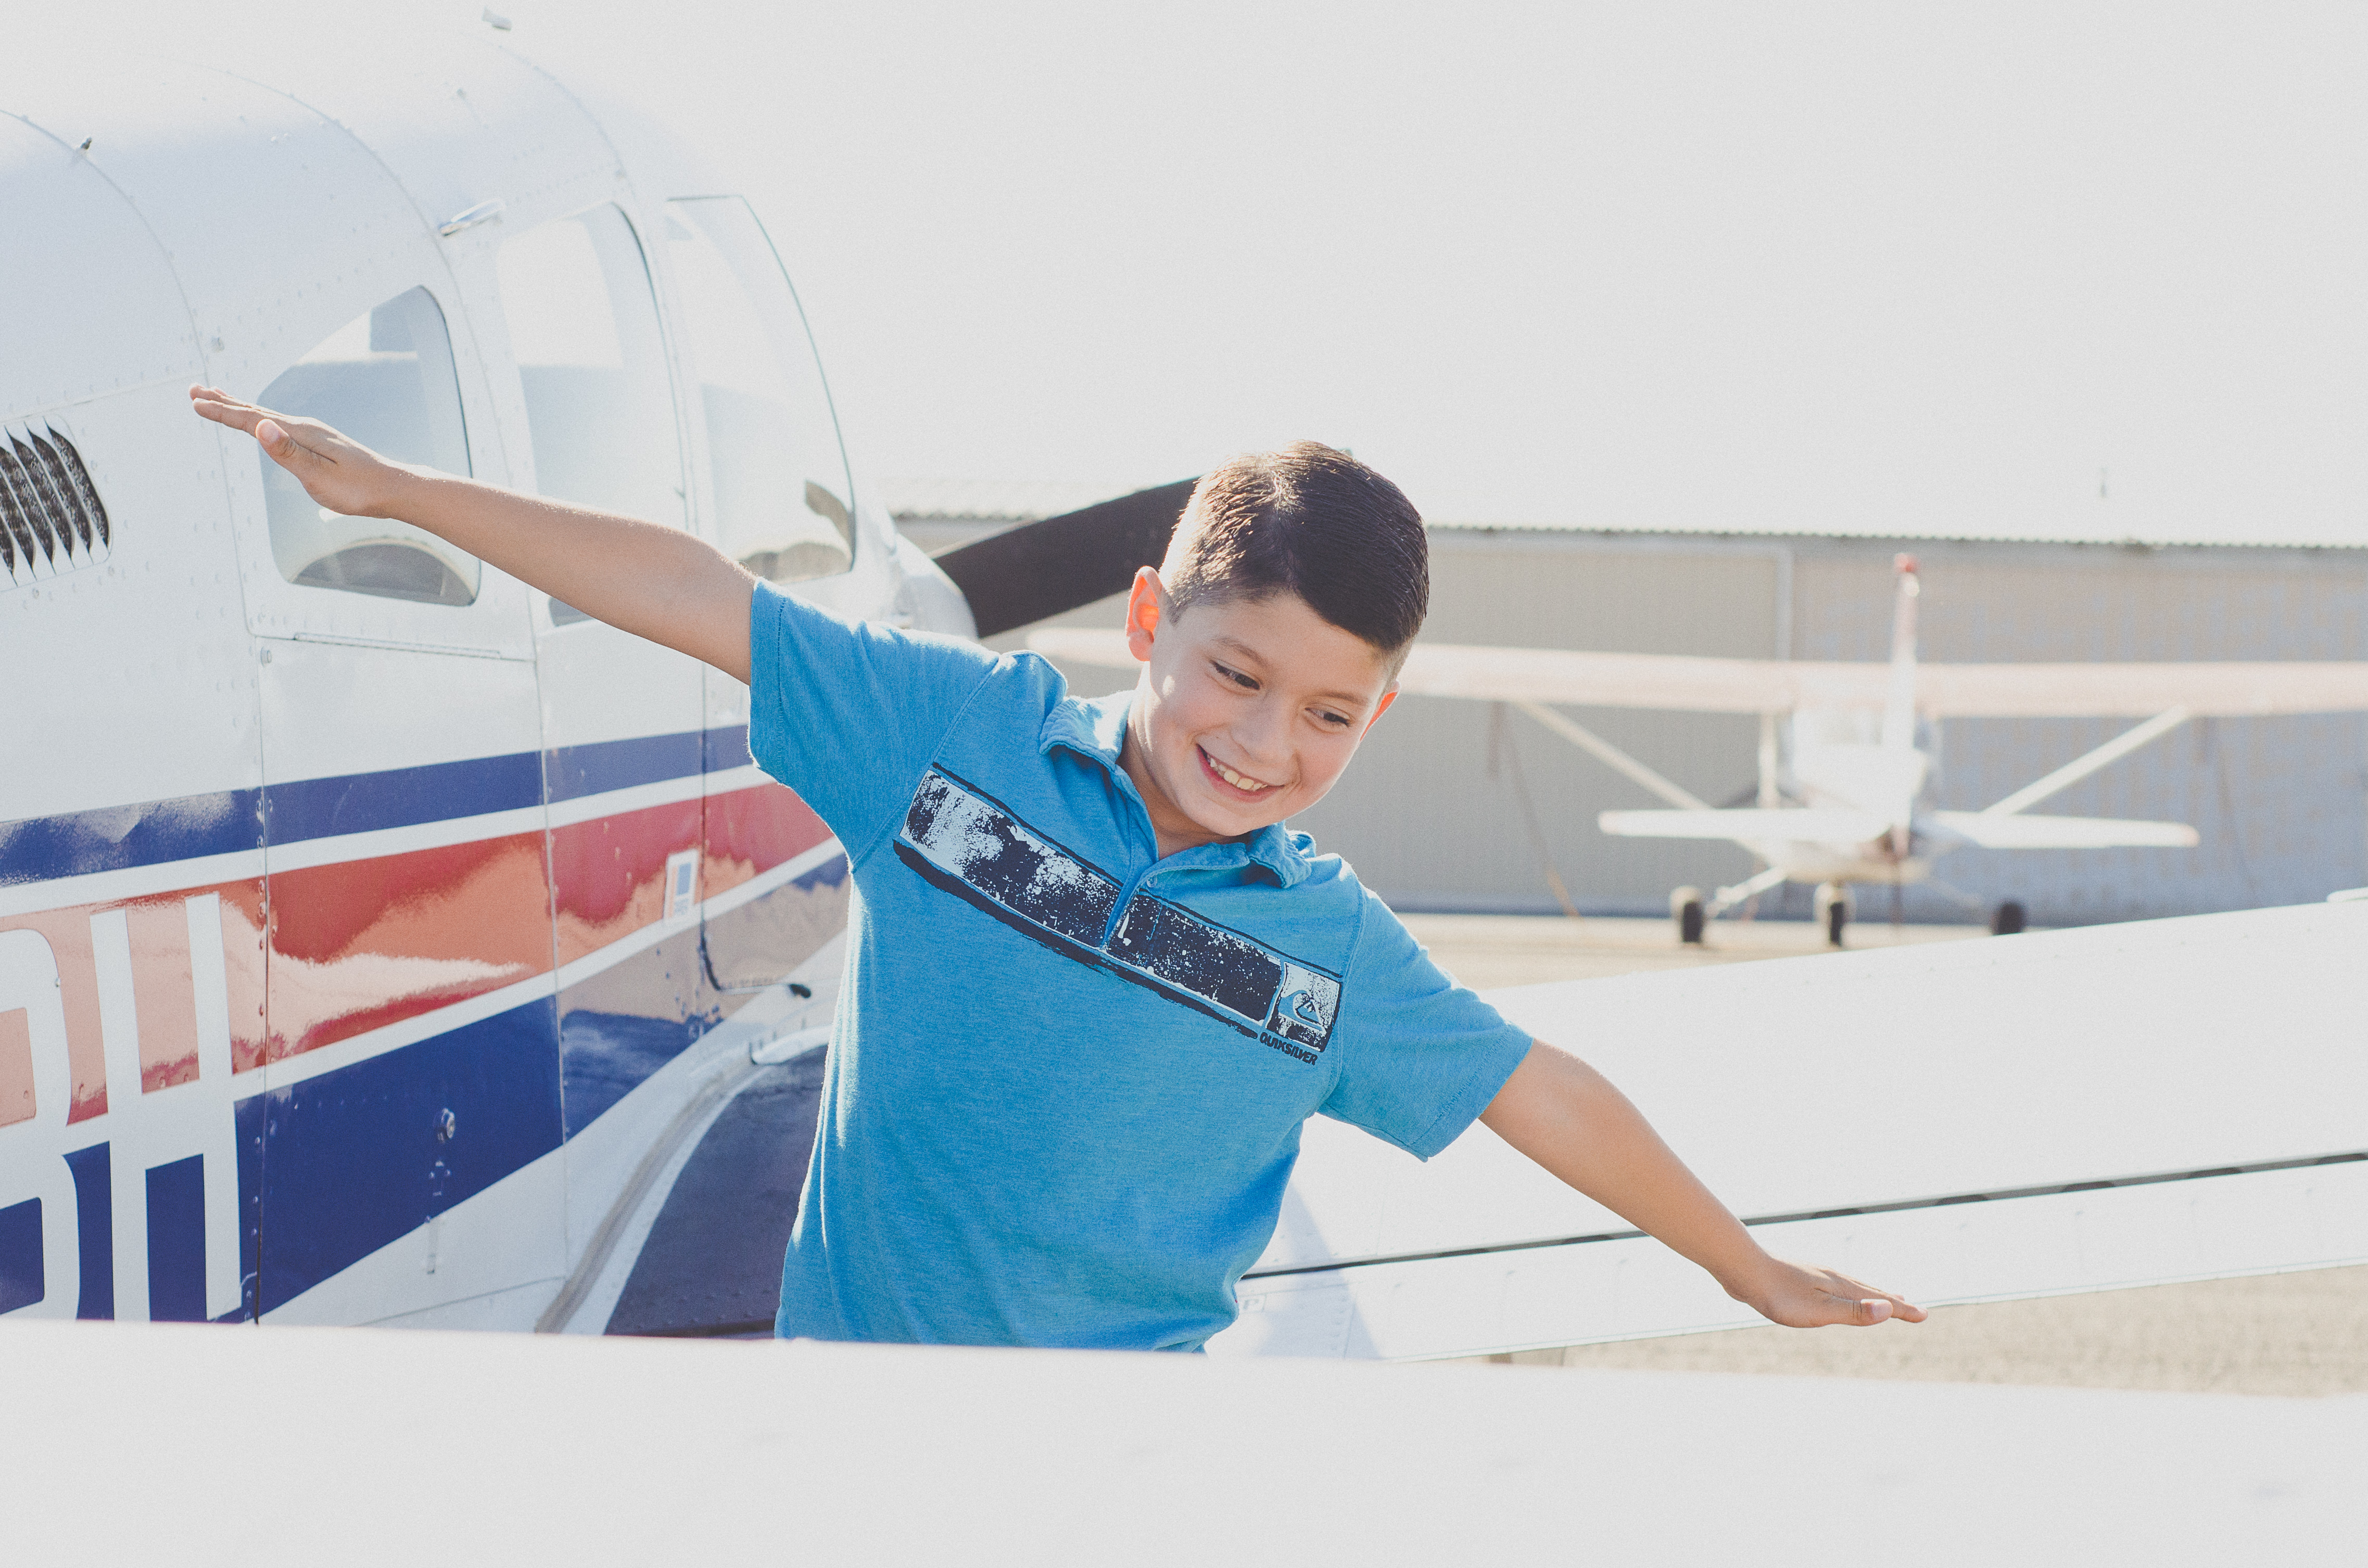 Aiden and the Plane